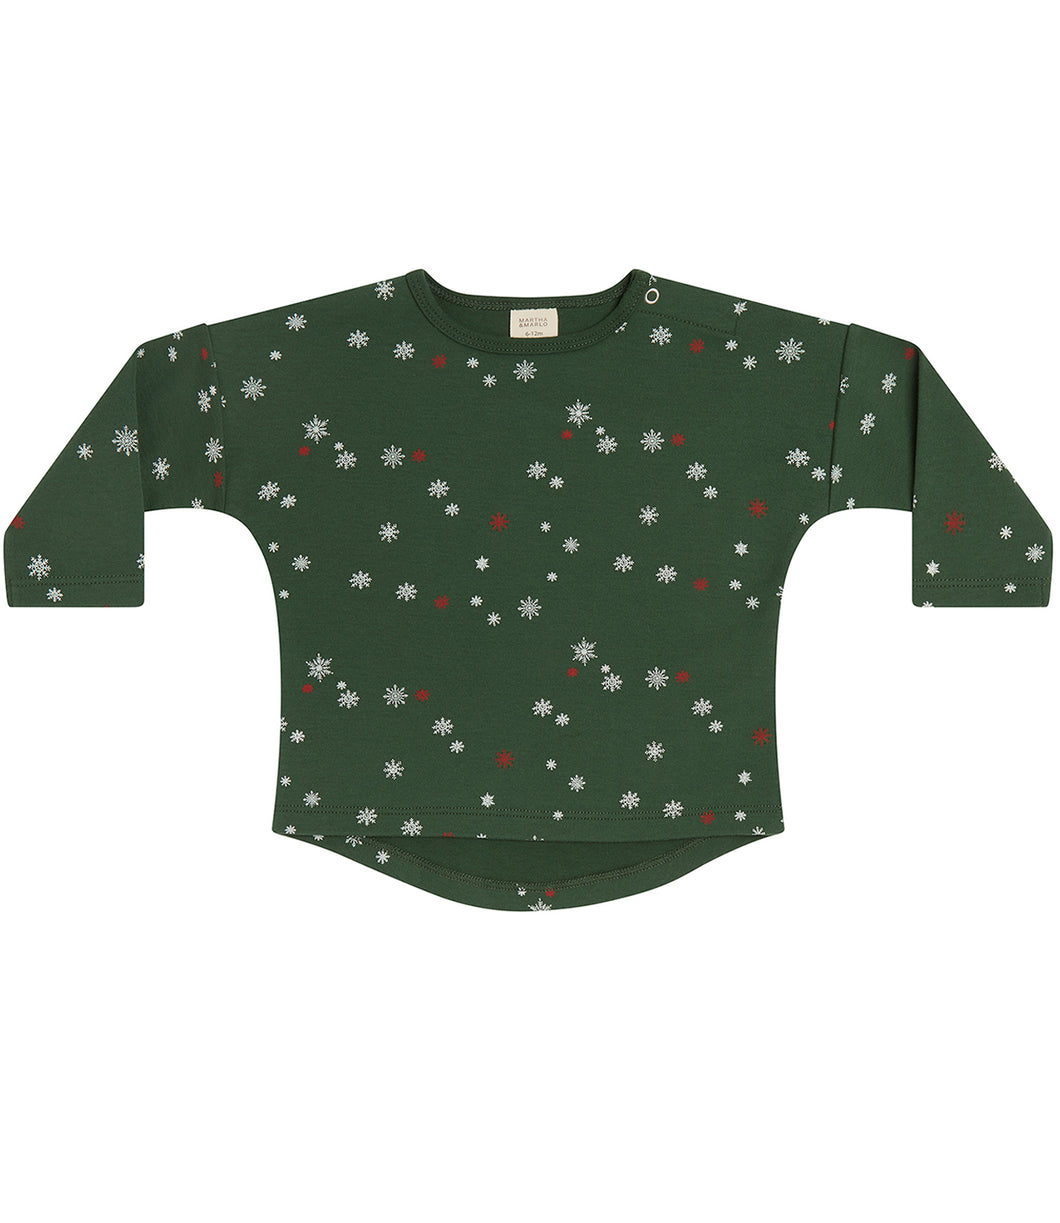 Martha & Marlo Kids Long Sleeve T-Shirt Organic Cotton Green Snowflake